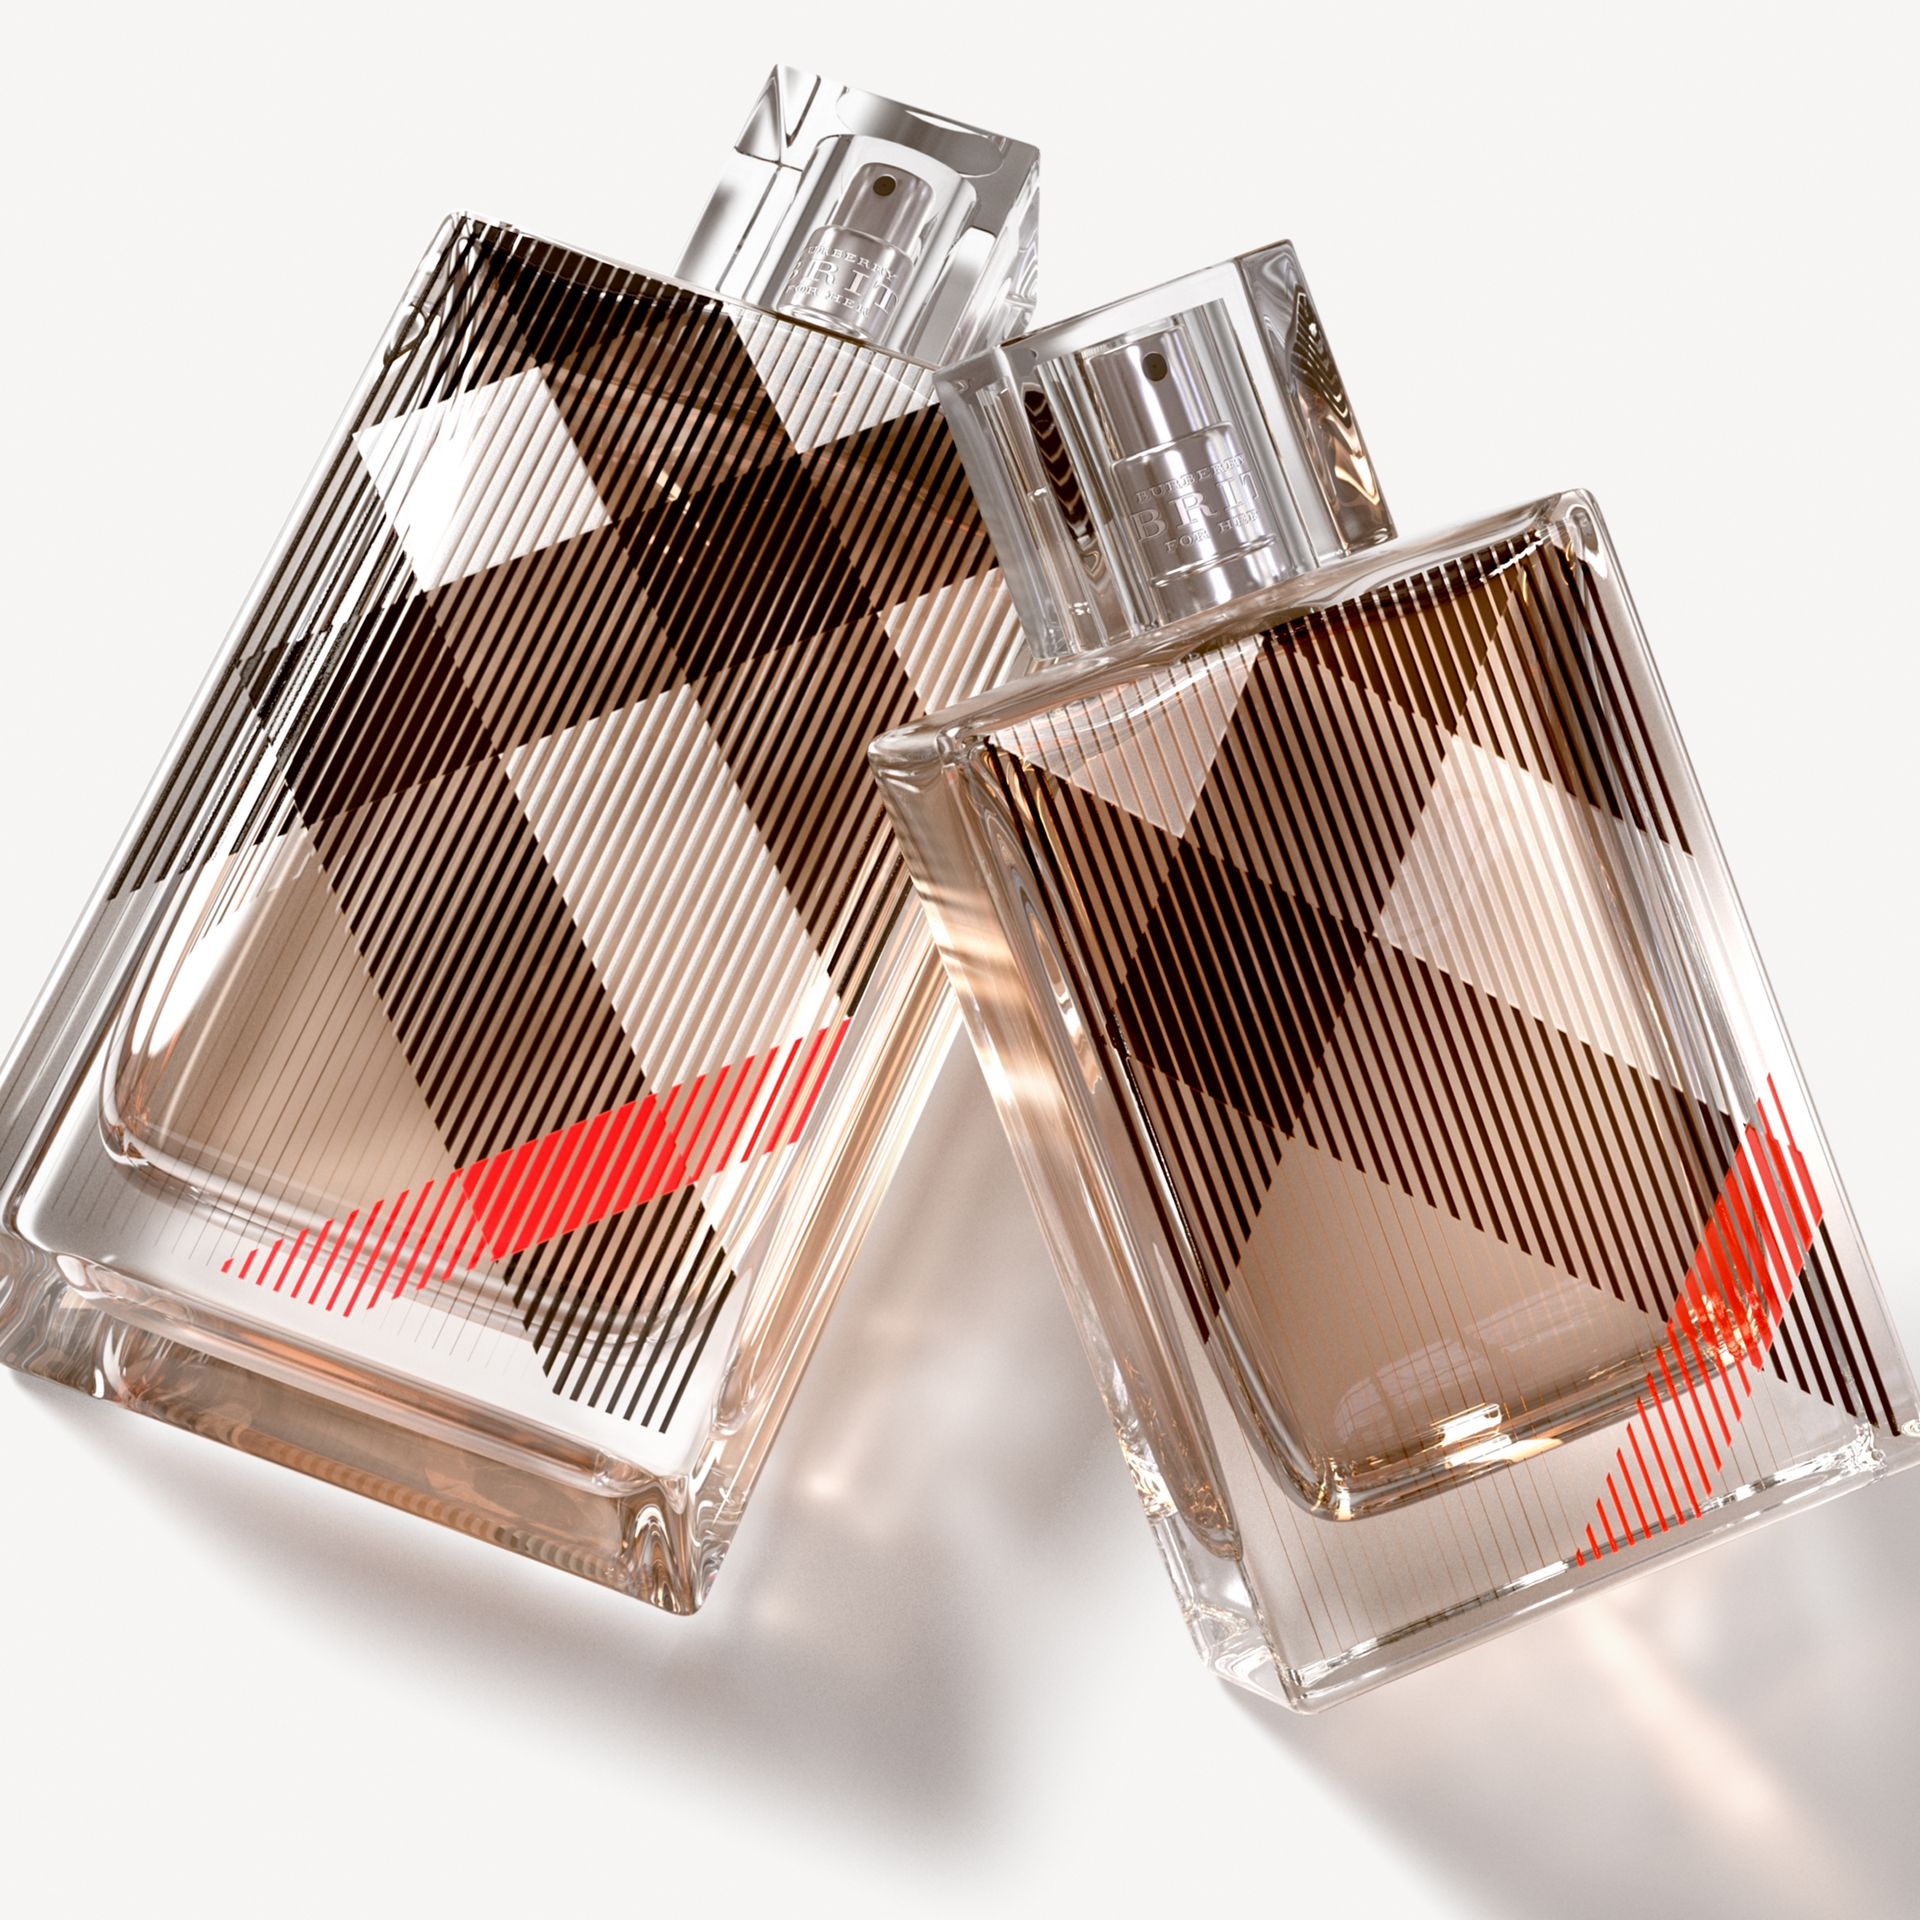 Burberry Brit For Her Eau de Parfum 100ml - gallery image 2